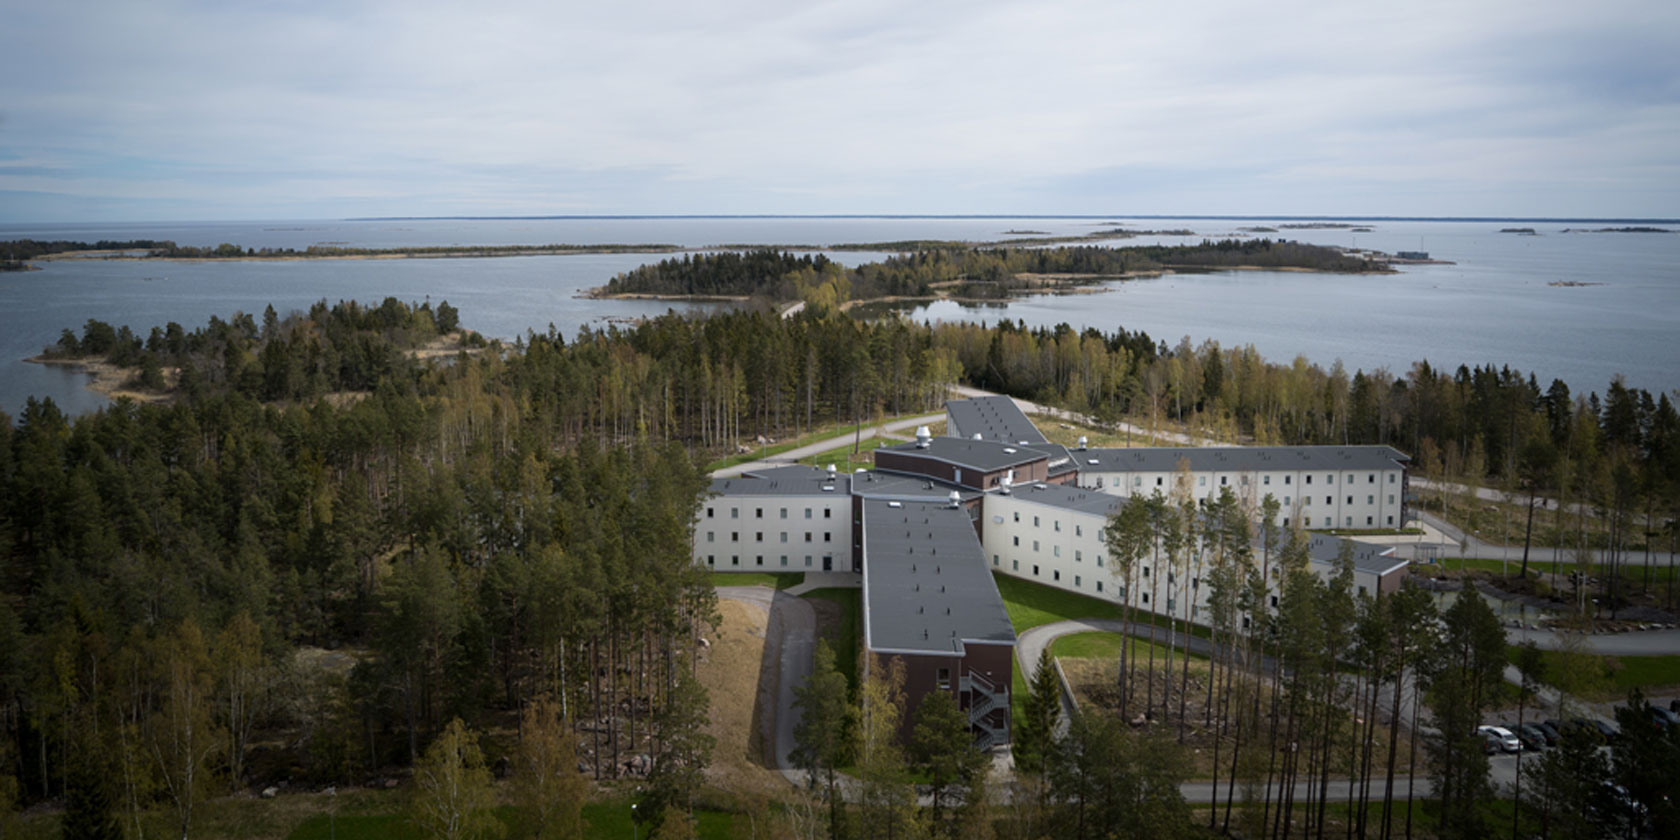 View of Igelgrundet staff accommodation in Forsmark